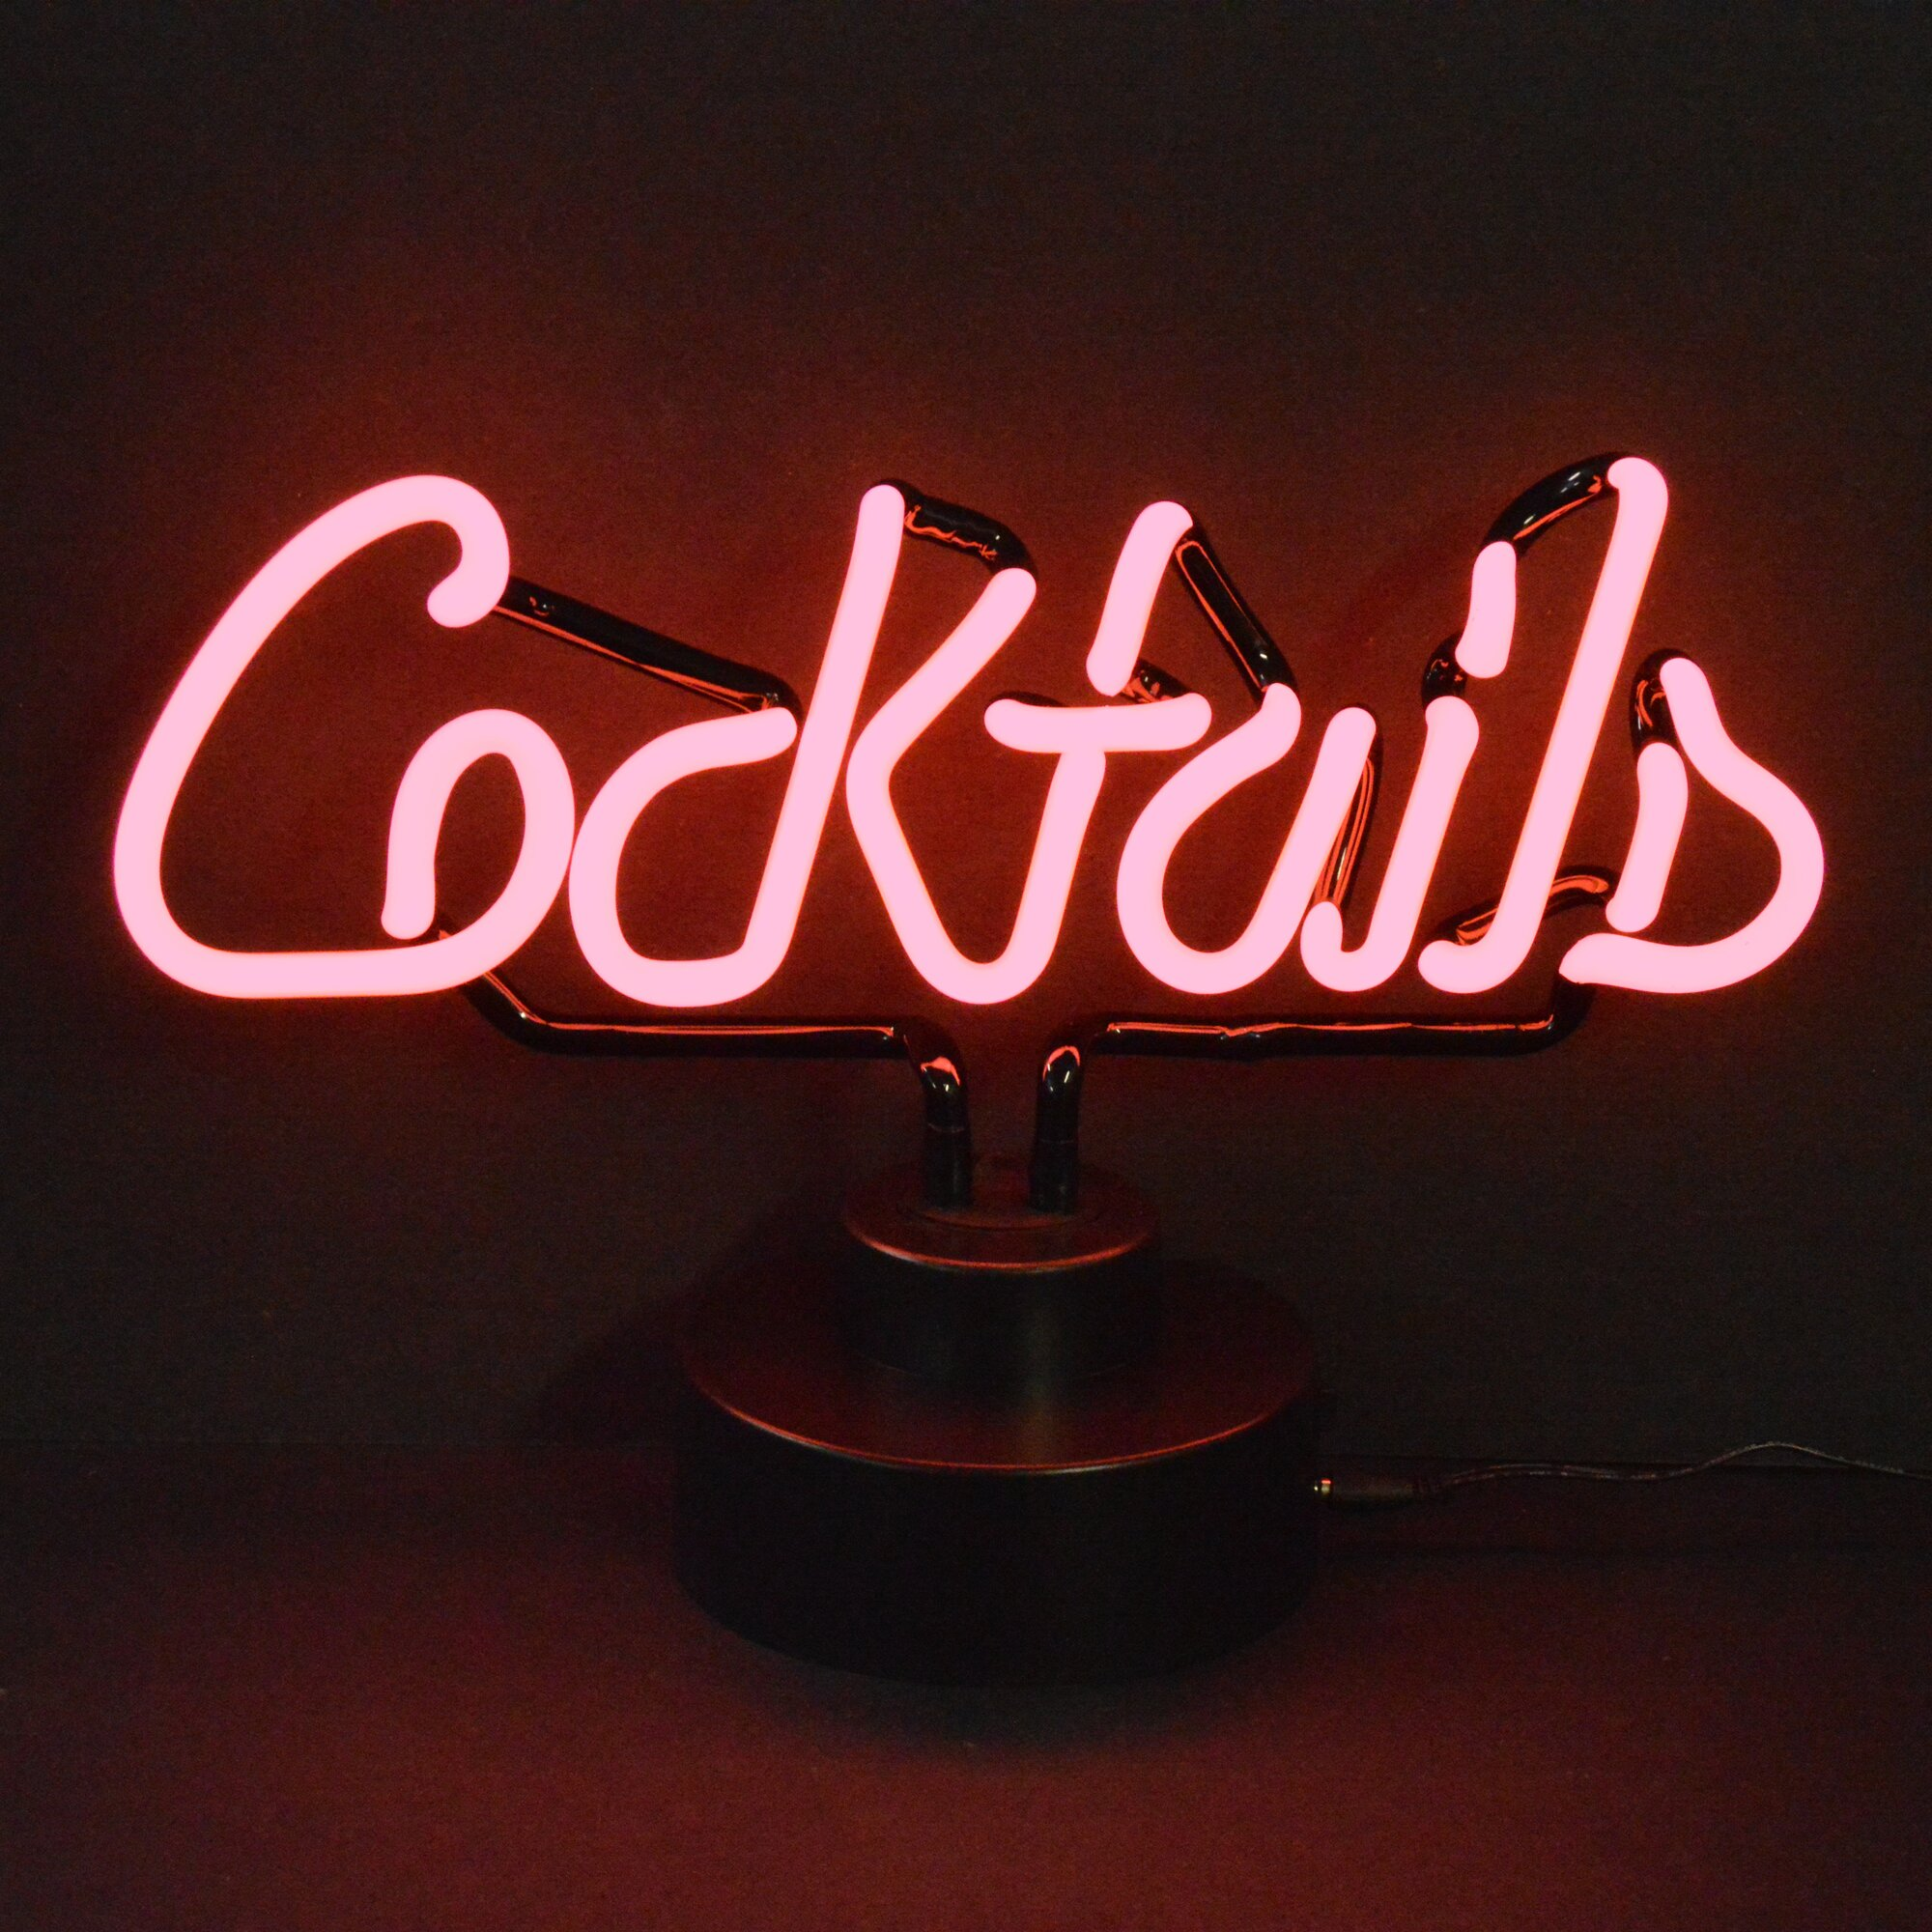 neon cocktails sign signs business neonetics